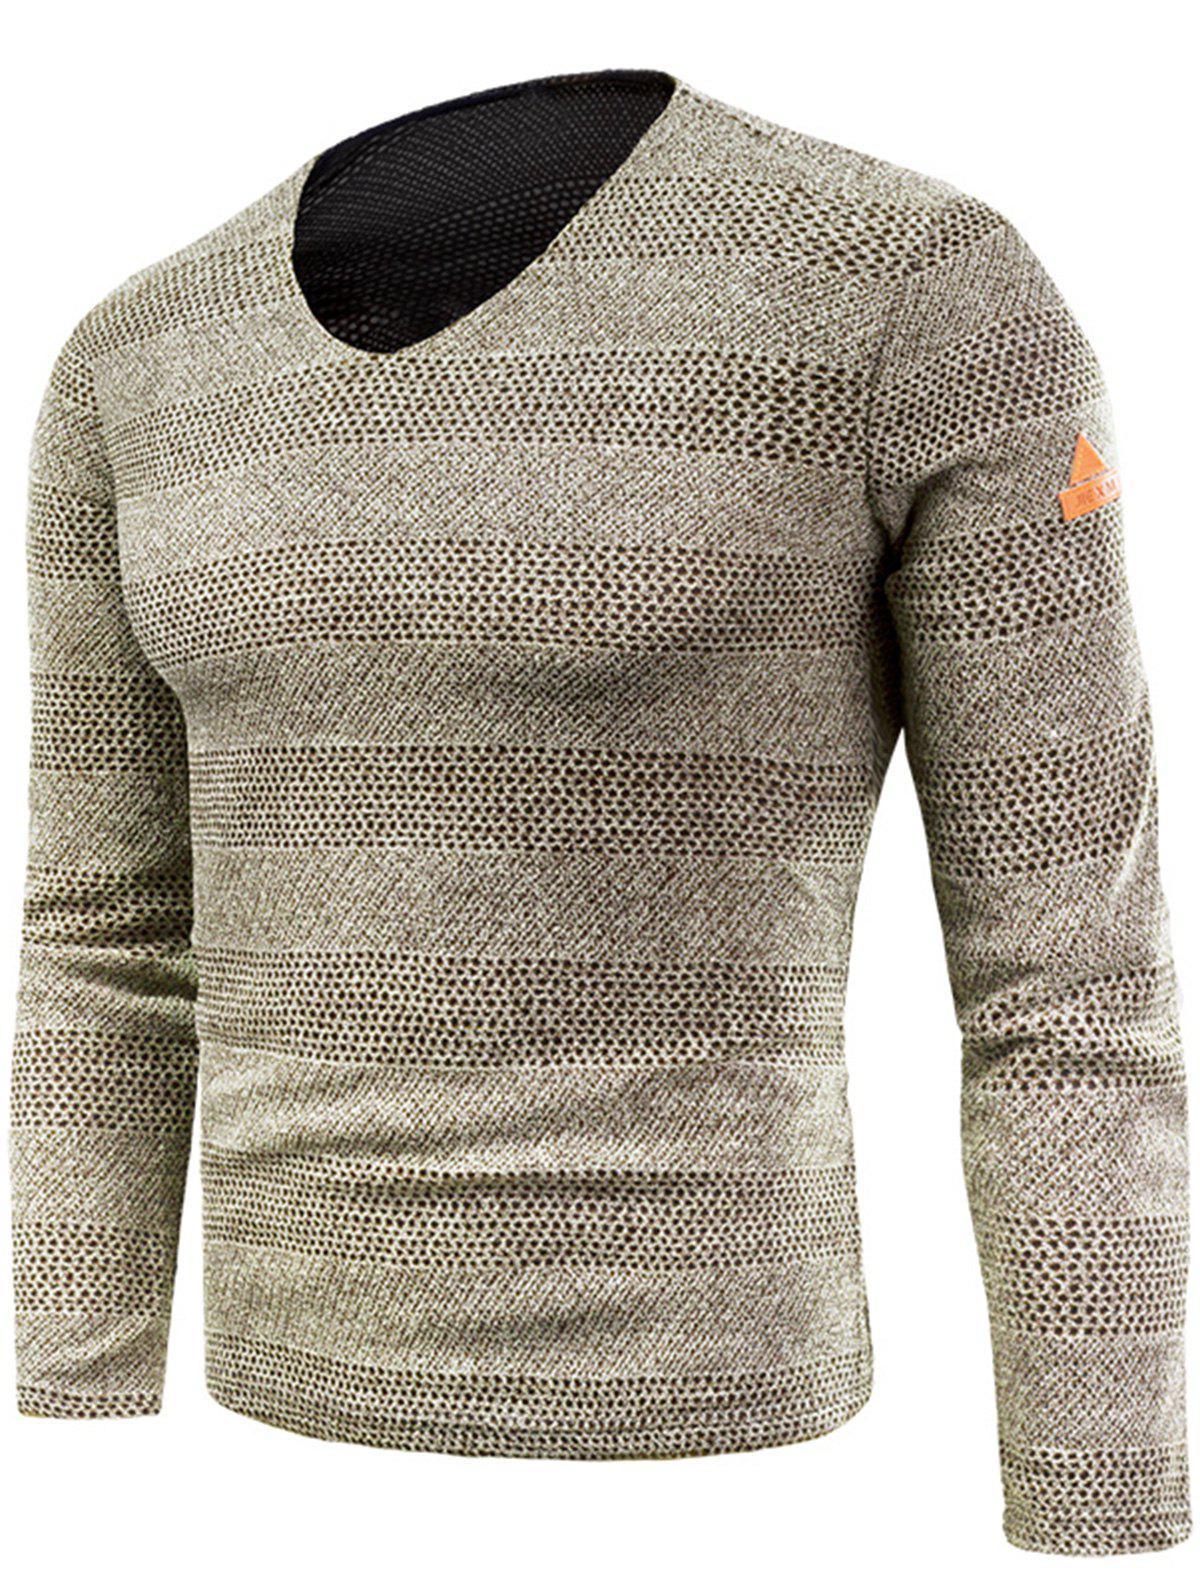 Knitted V Neck Long Sleeve T-shirt - KHAKI 2XL